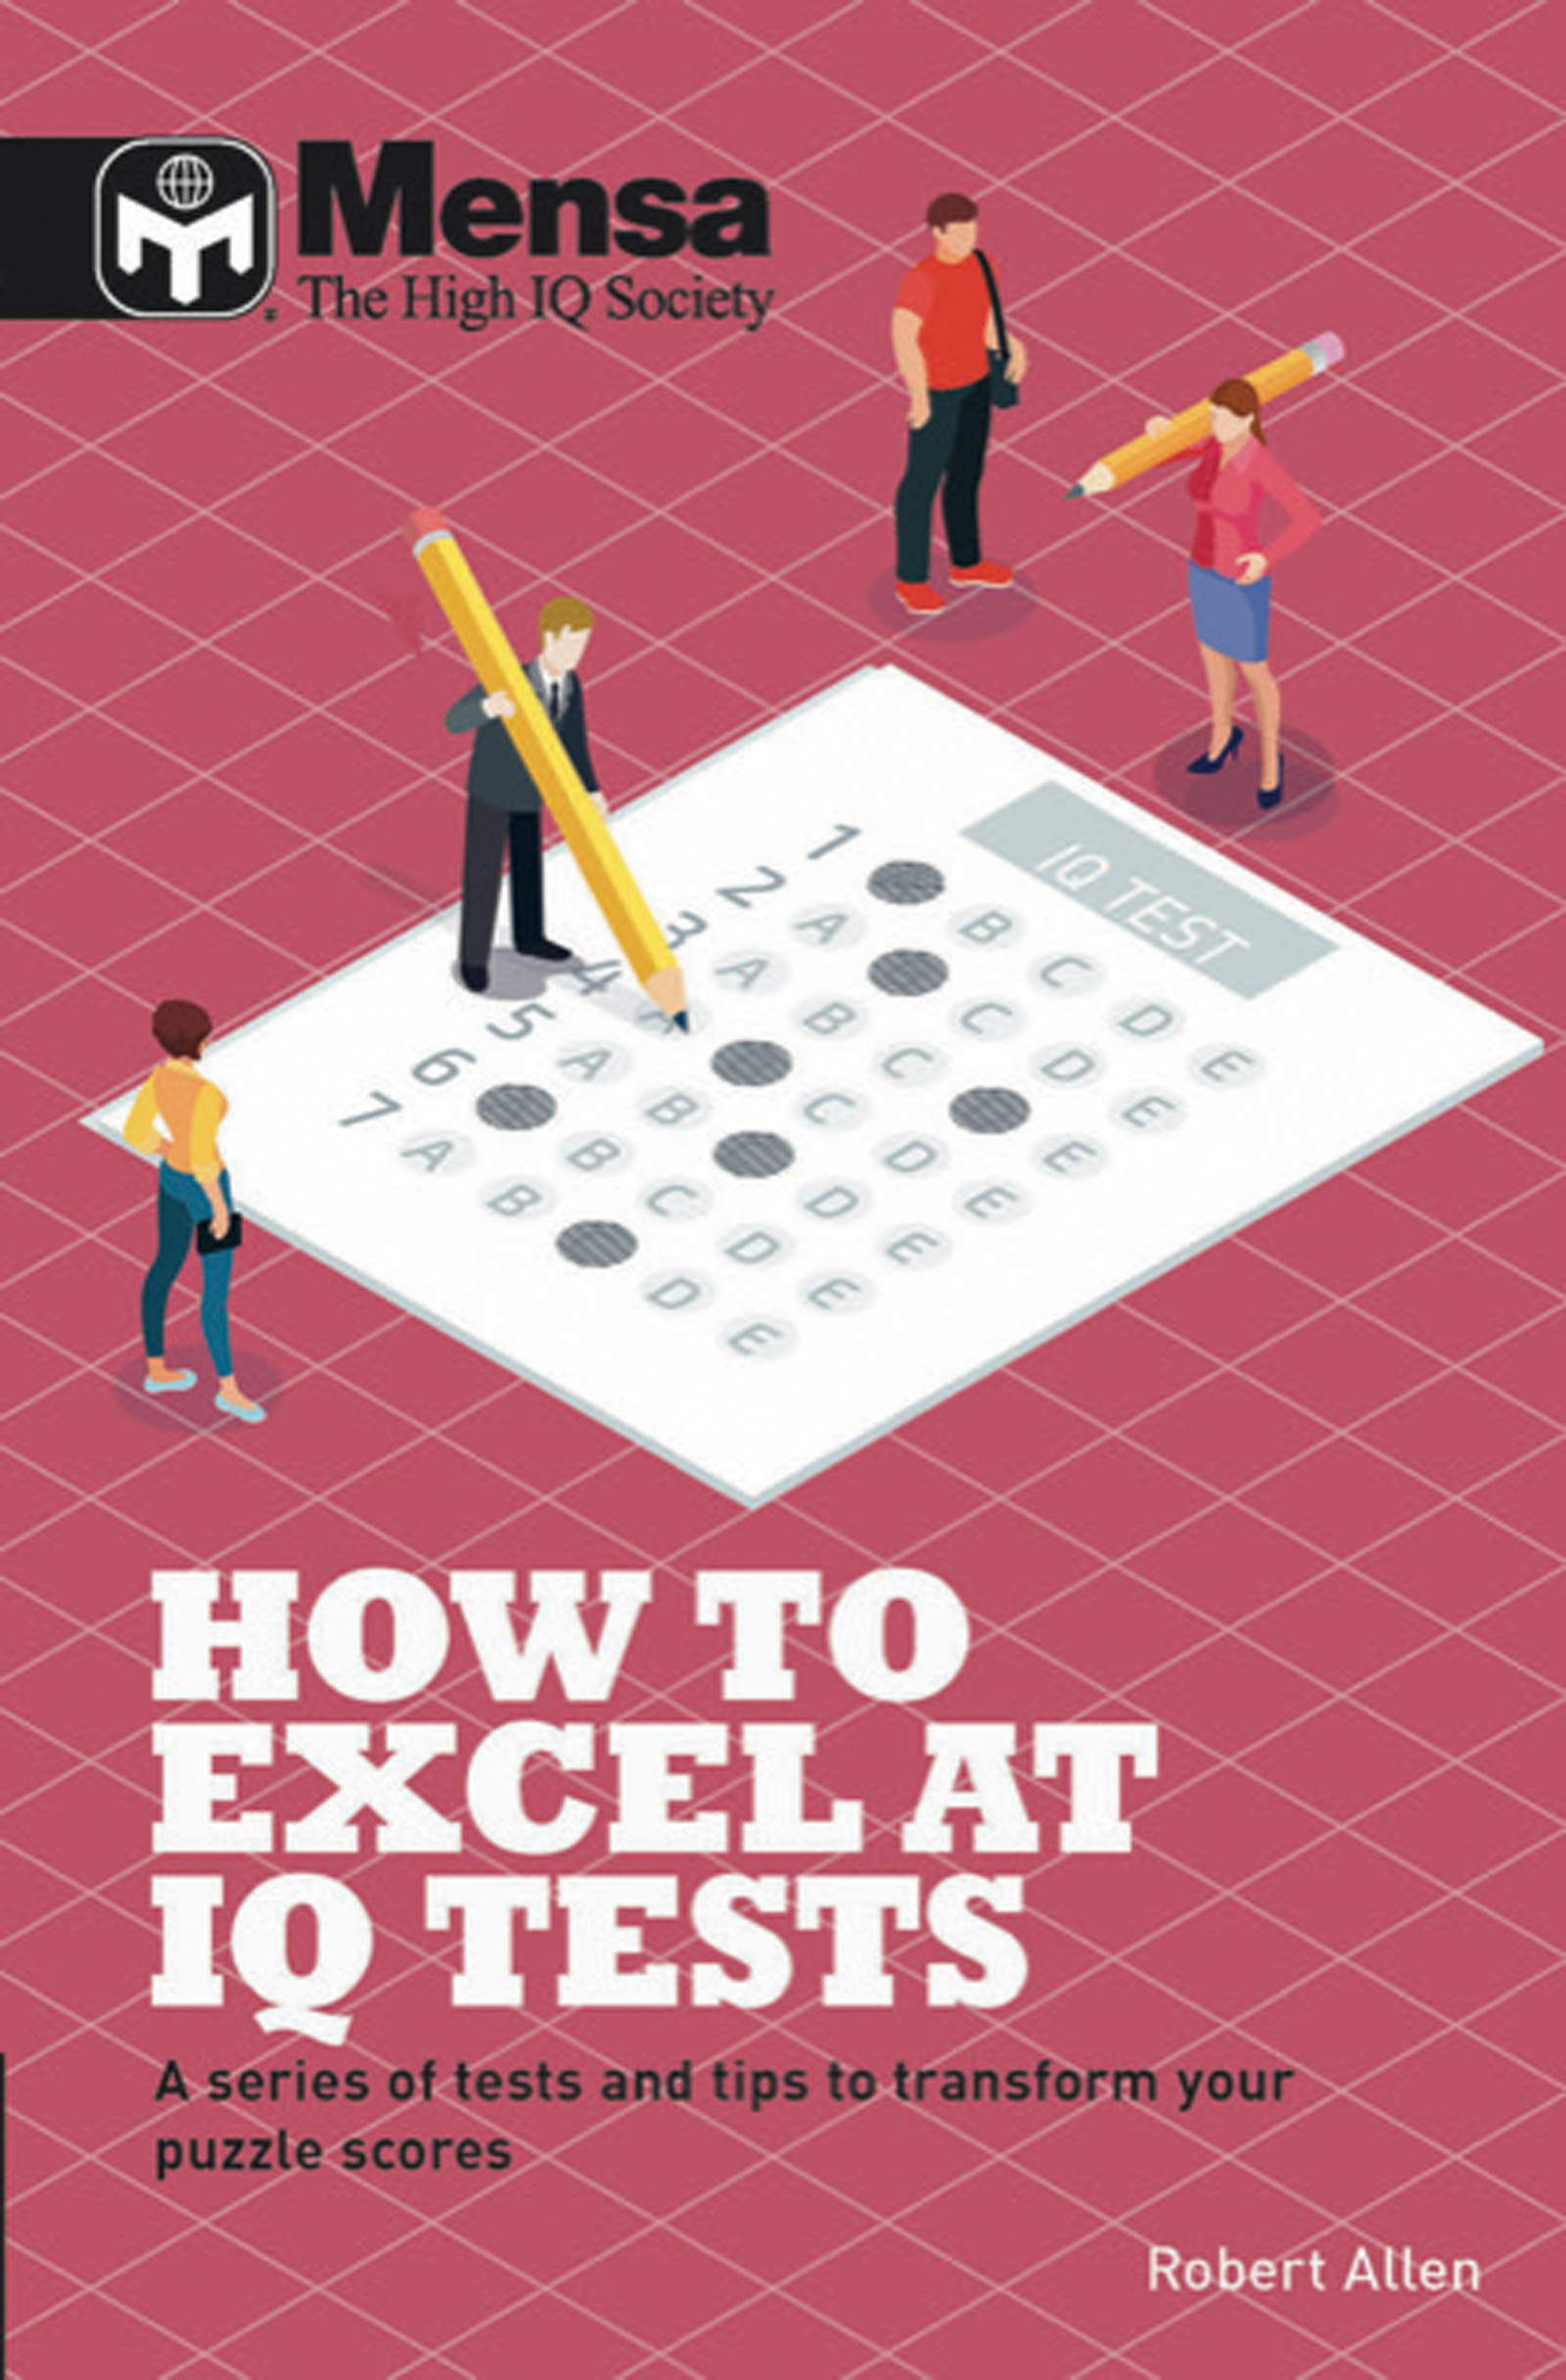 Mensa - How to Excel at IQ Tests: A series of tests and tips to transform your puzzle scores: Amazon.es: Mensa Ltd: Libros en idiomas extranjeros